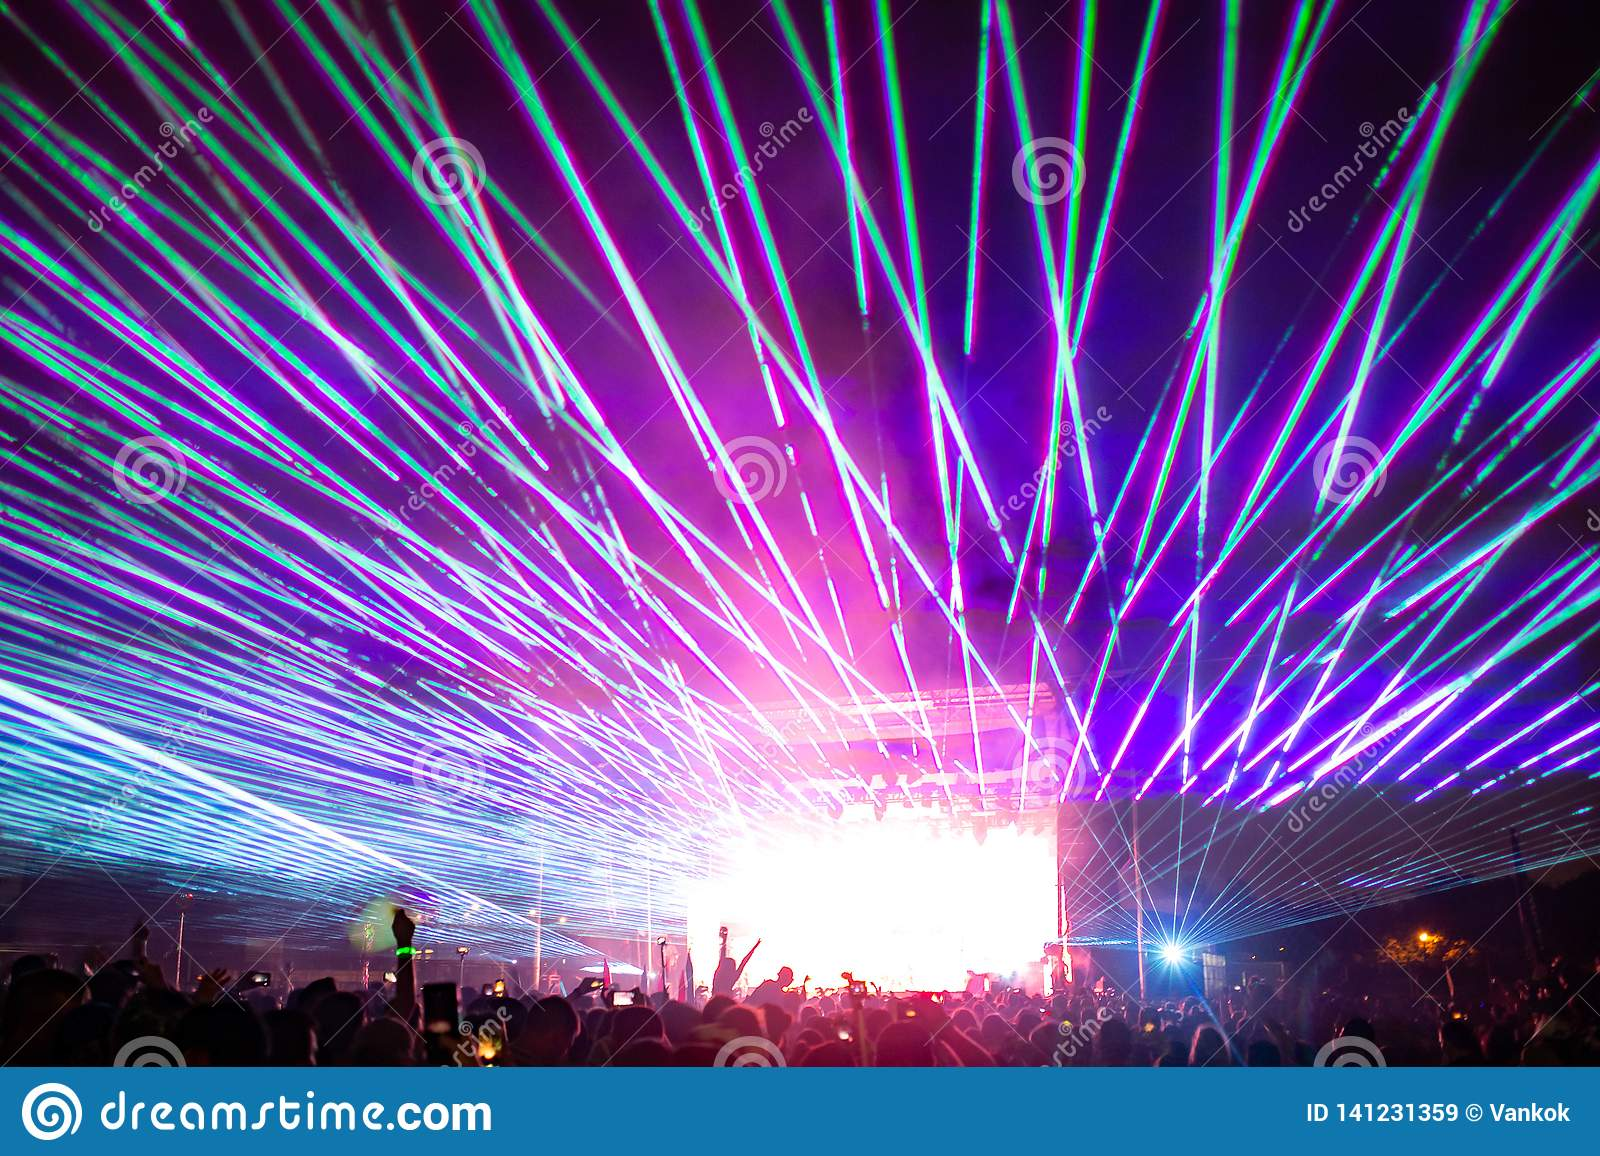 Night Concert Lights At The Festival With Lasers Stock ...